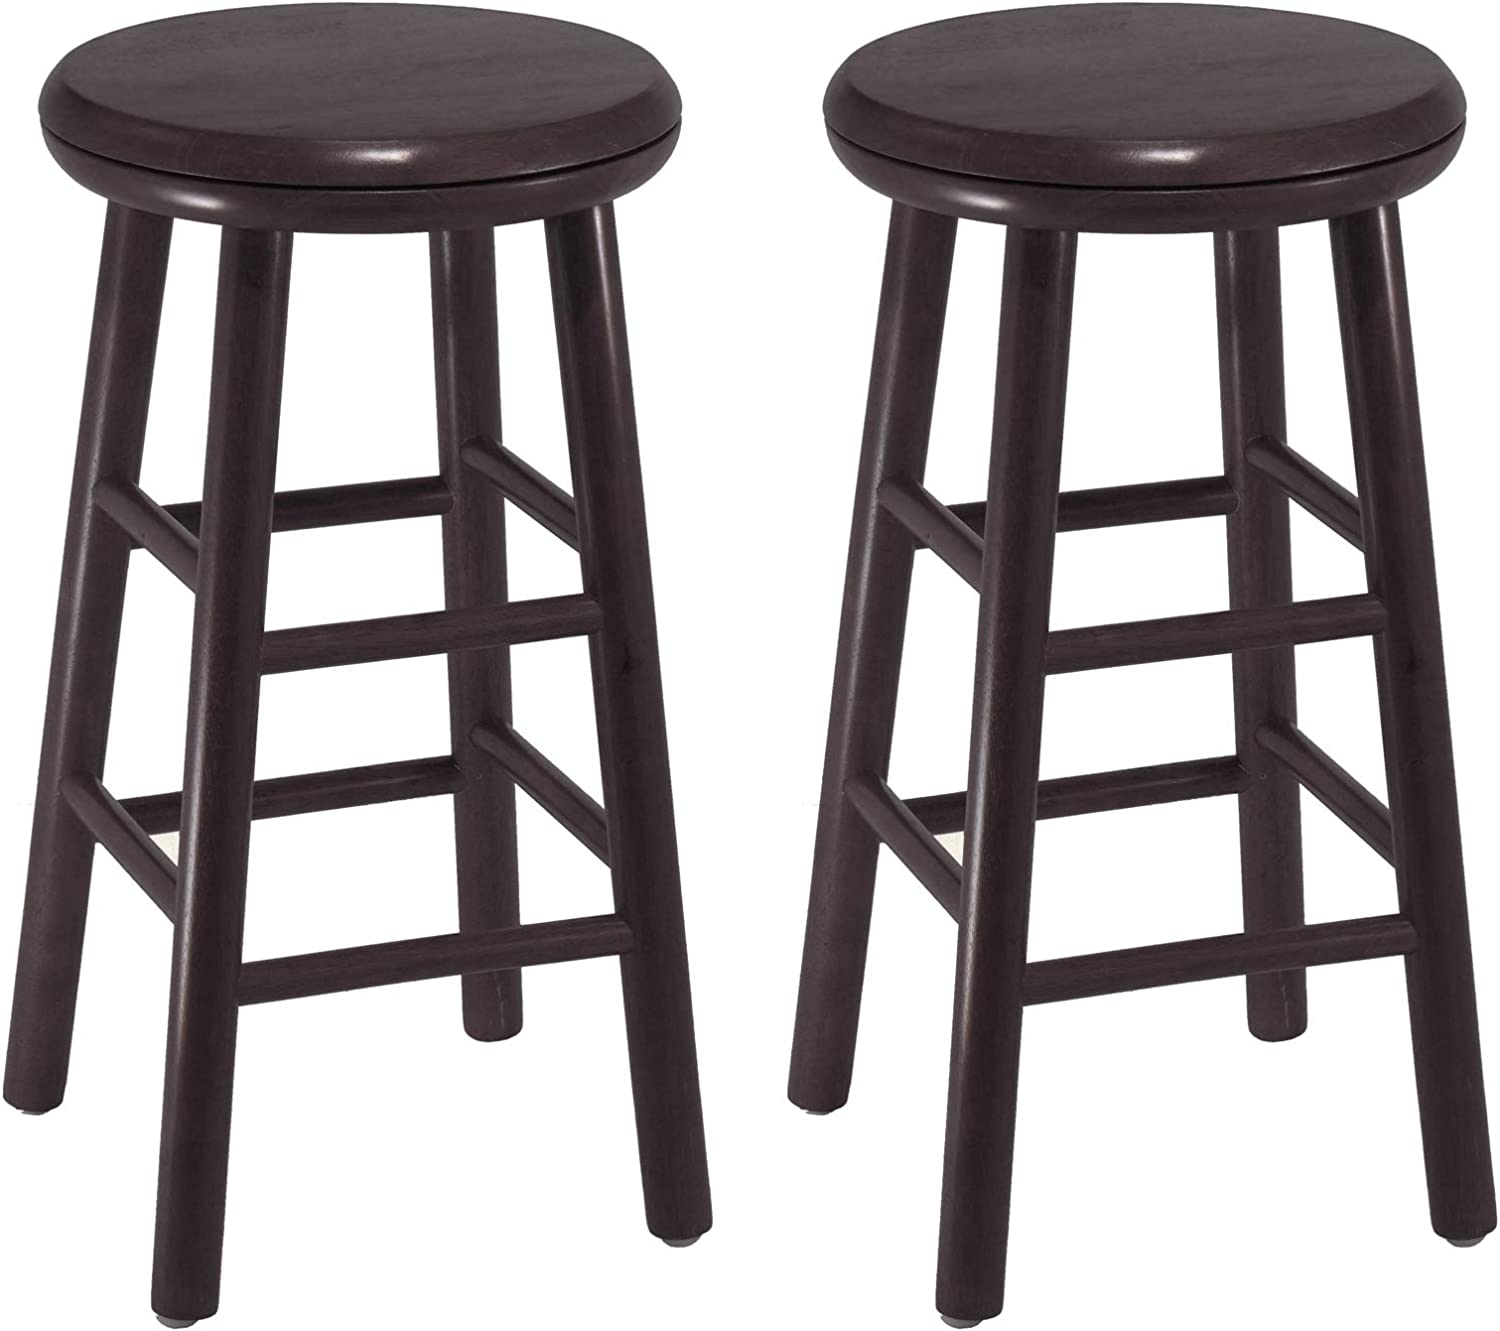 Winsome Wood 24-Inch Swivel Bar Stools, Dark Espresso Finish, Set of 2